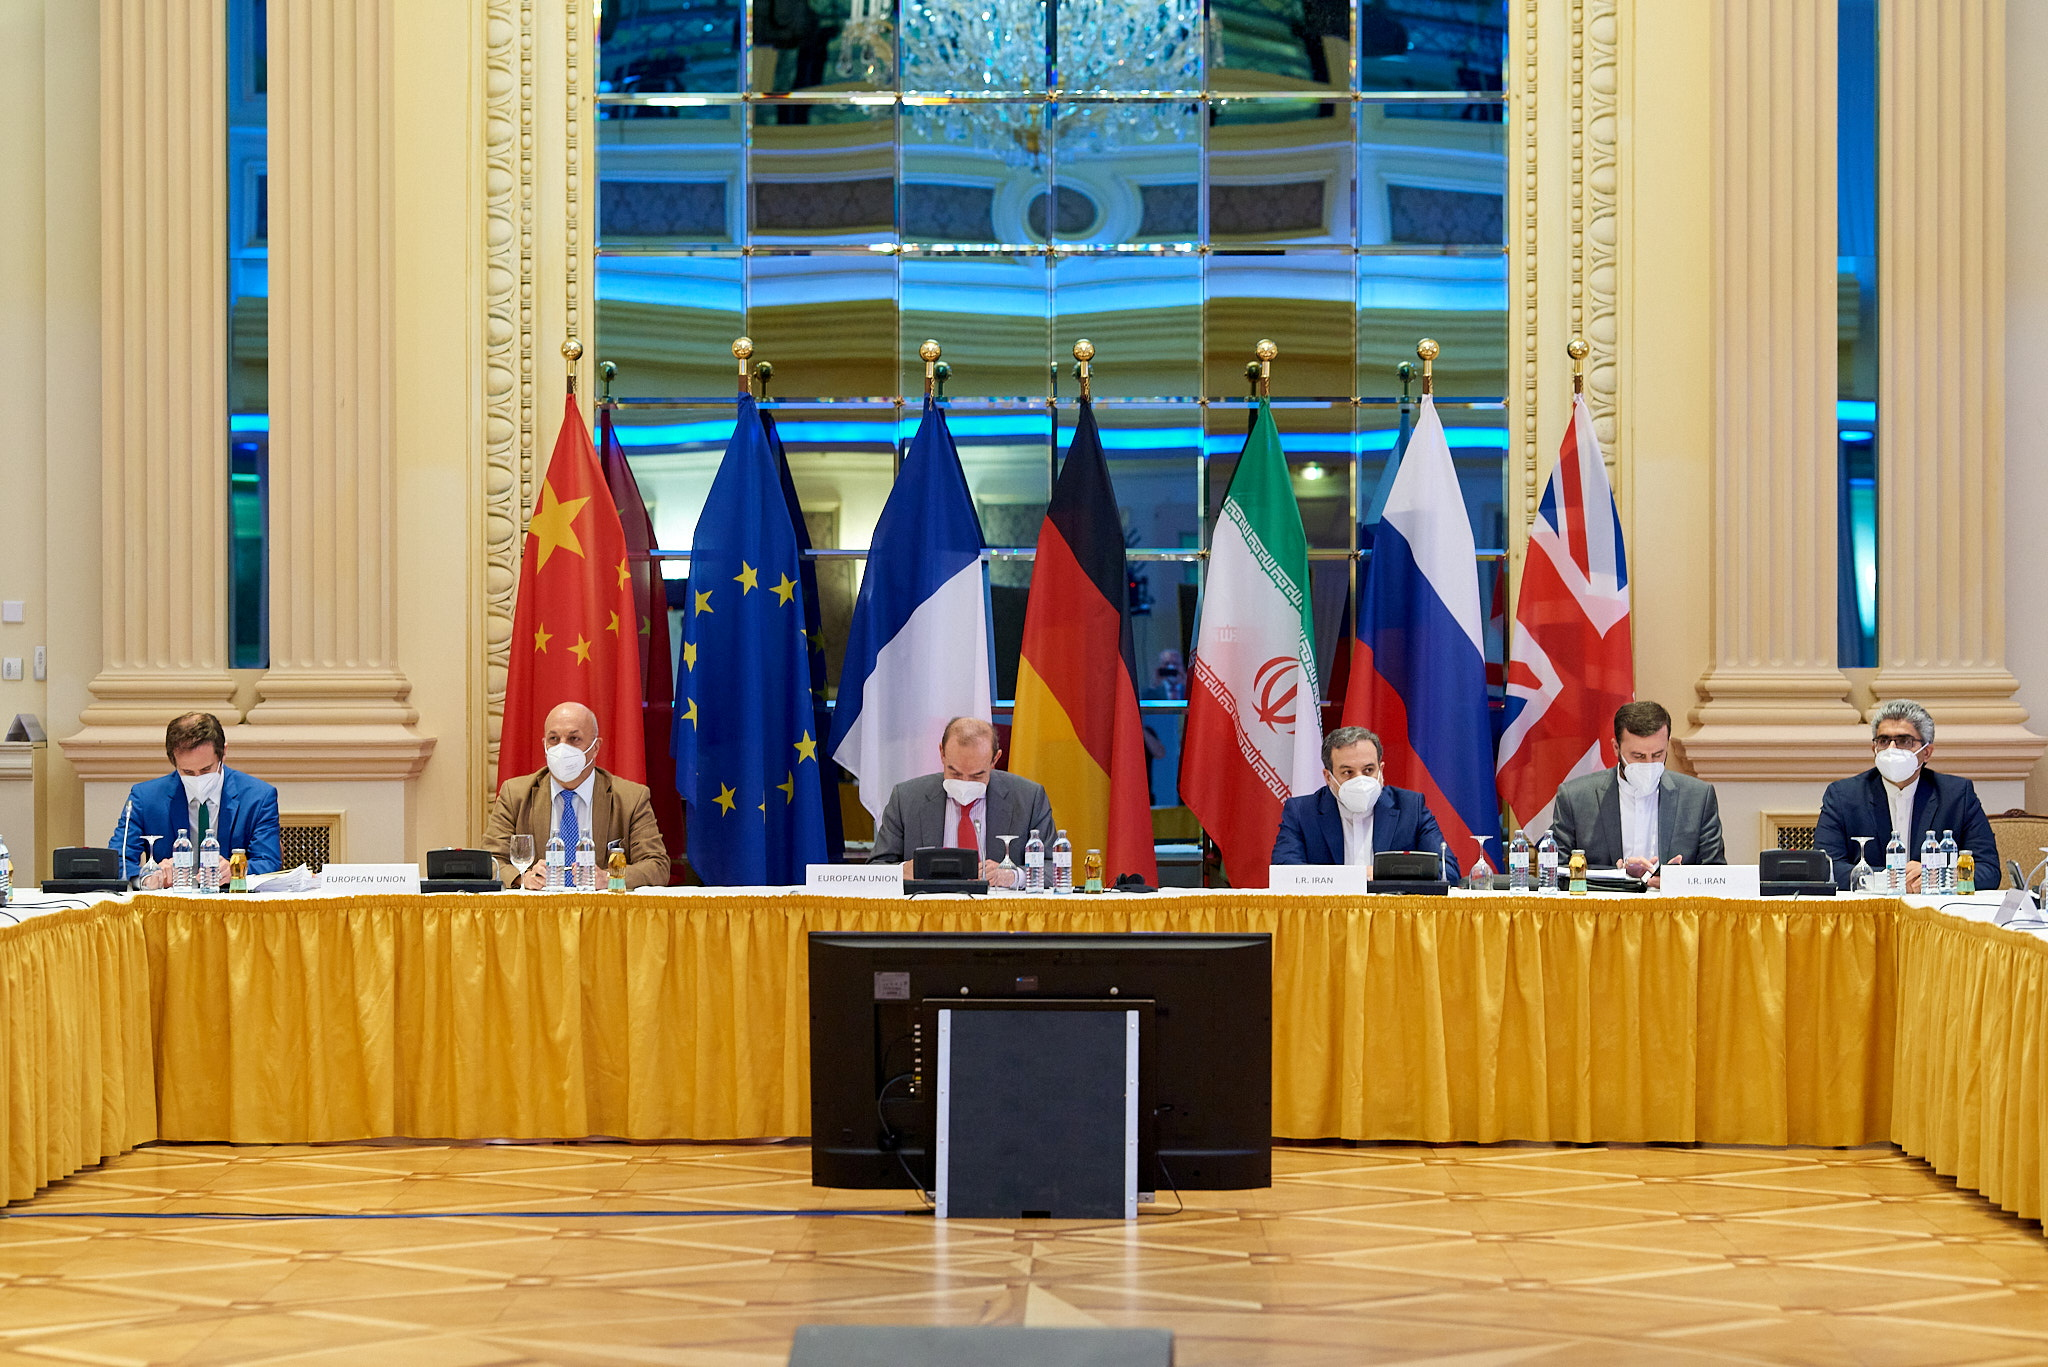 European External Action Service (EEAS) Deputy Secretary General Enrique Mora and Iranian Deputy at Ministry of Foreign Affairs Abbas Araghchi wait for the start of talks on reviving the 2015 Iran nuclear deal in Vienna, Austria June 20, 2021. EU Delegation in Vienna/Handout via REUTERS